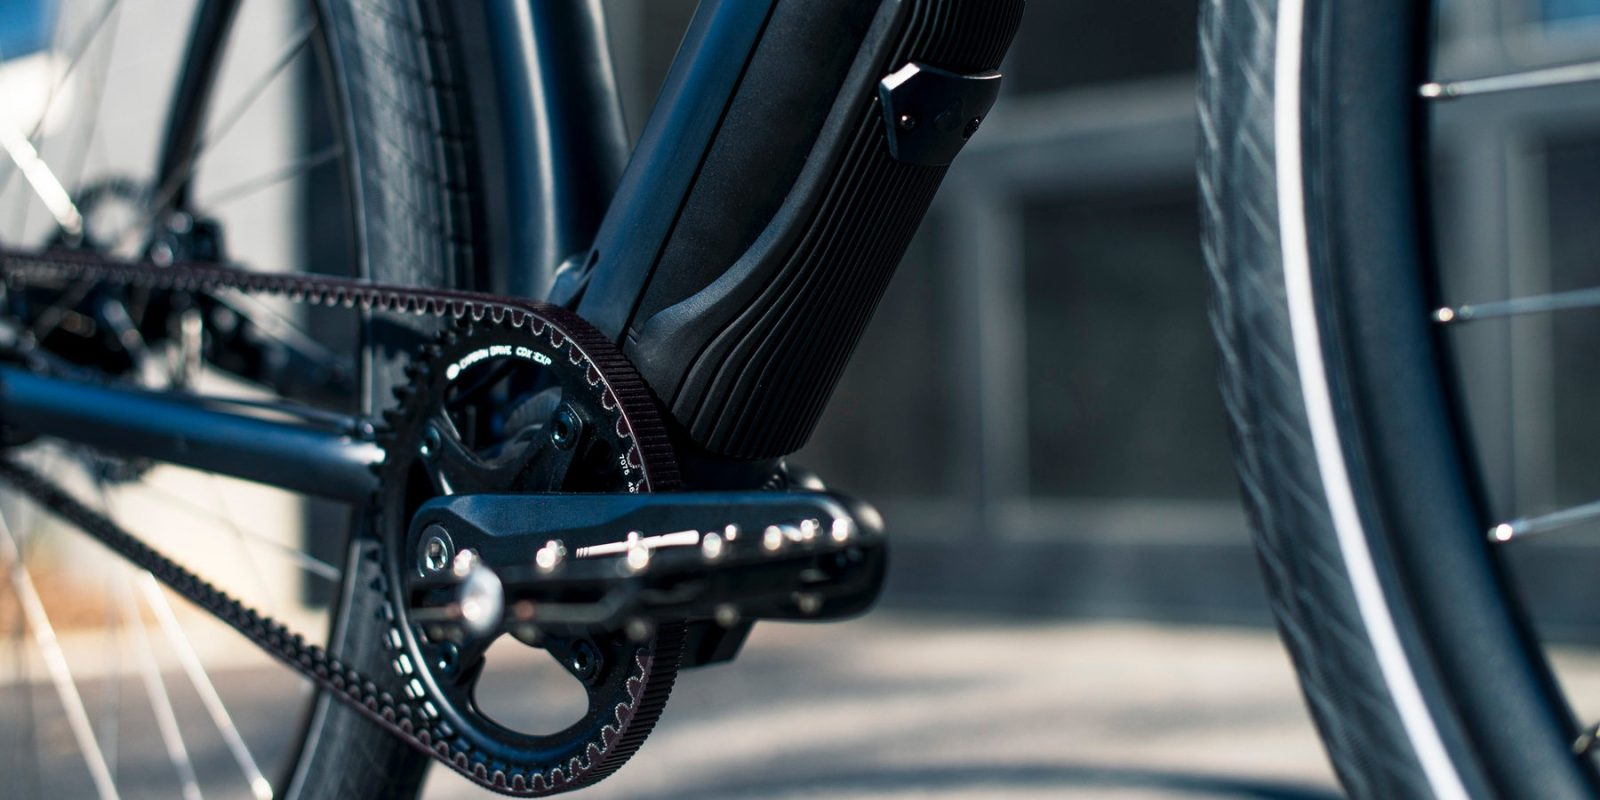 d3ffd4690ad Vermont-based Budnitz Bicycles has updated its Model E electric bicycle for  2019. In addition to a number of high-end components like a Gates carbon  belt ...